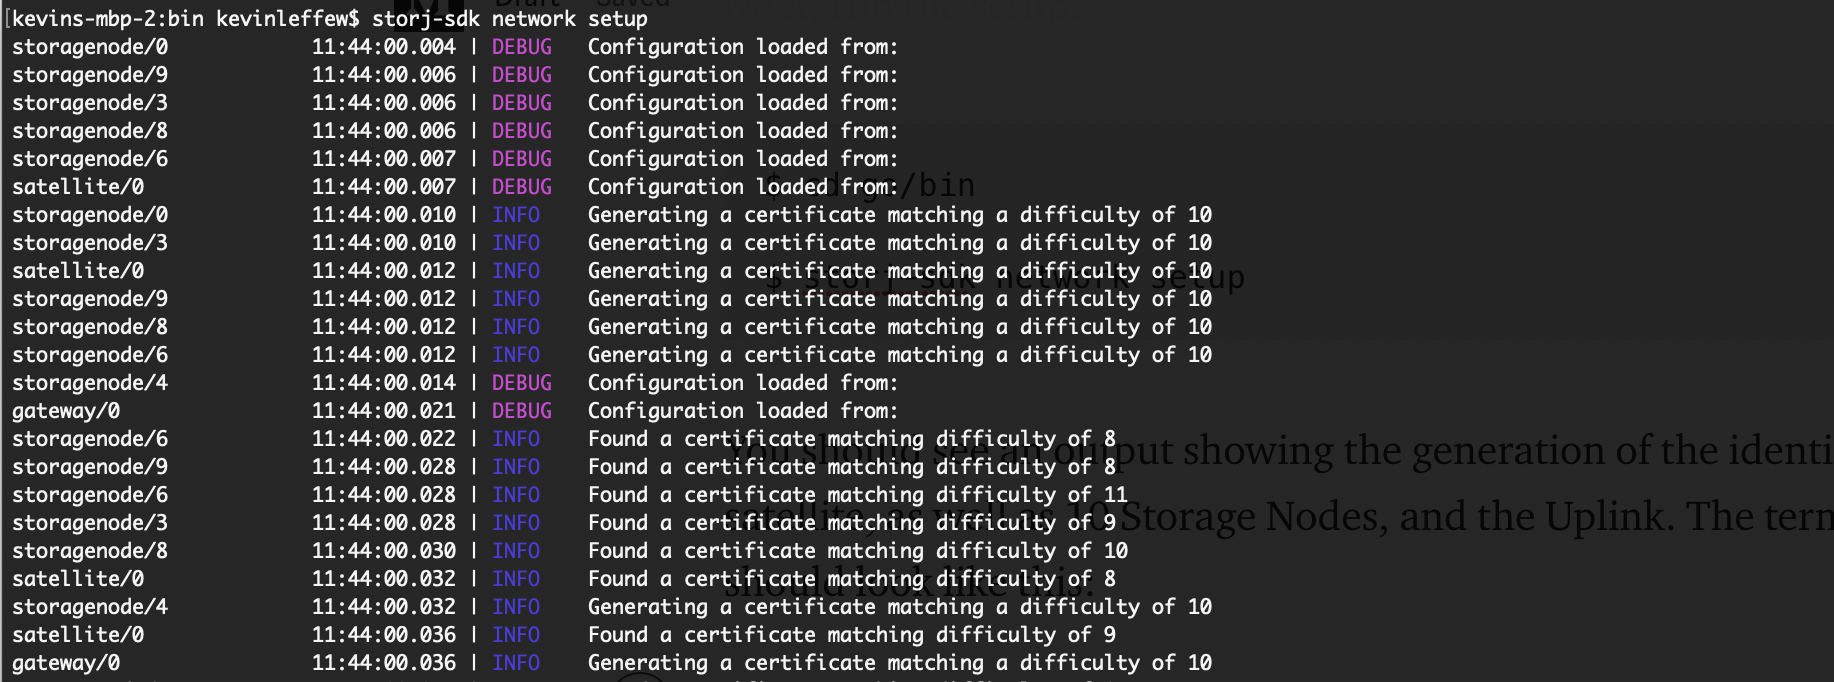 As shown above, the config is generate certificates for the storage nodes. The public key of the node's certificate authority determines its node ID (which is the hash of the public key and acts as a proof-of-work threshold).